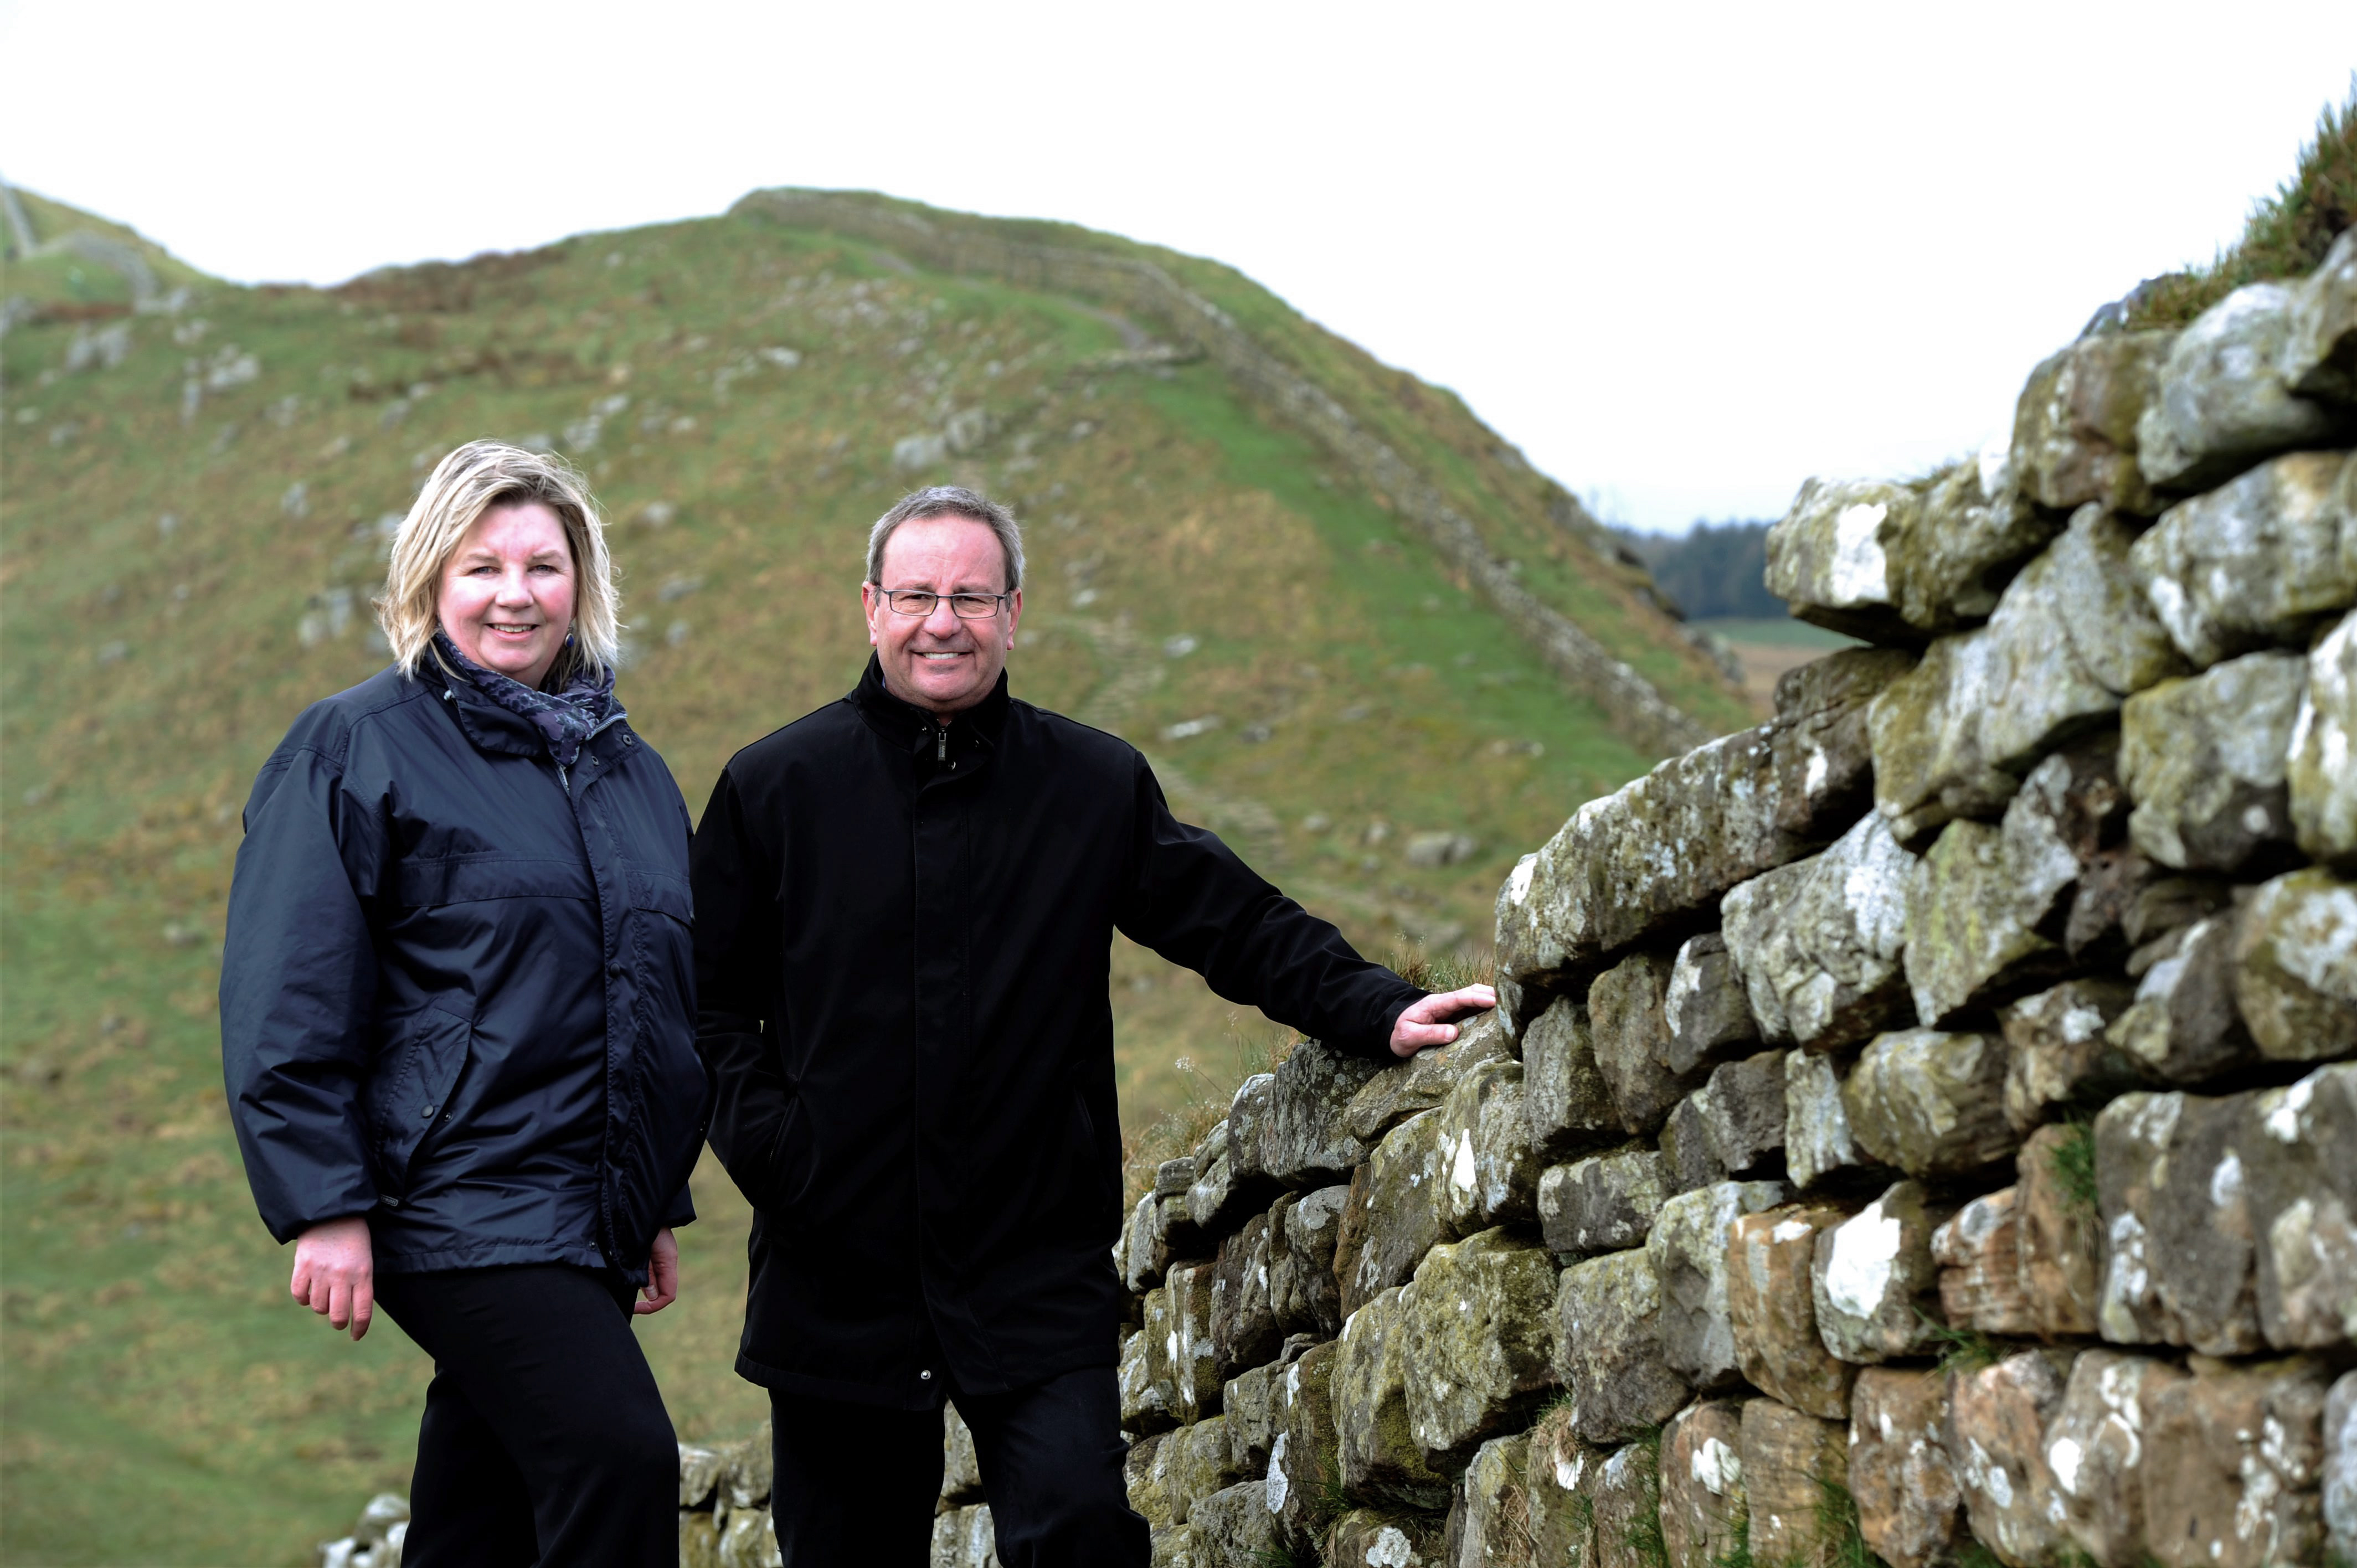 Caption: Linda Tuttiett, Hadrian's Wall Heritage & Marek Gordon, SITA Trust at Hadrian's Wall.